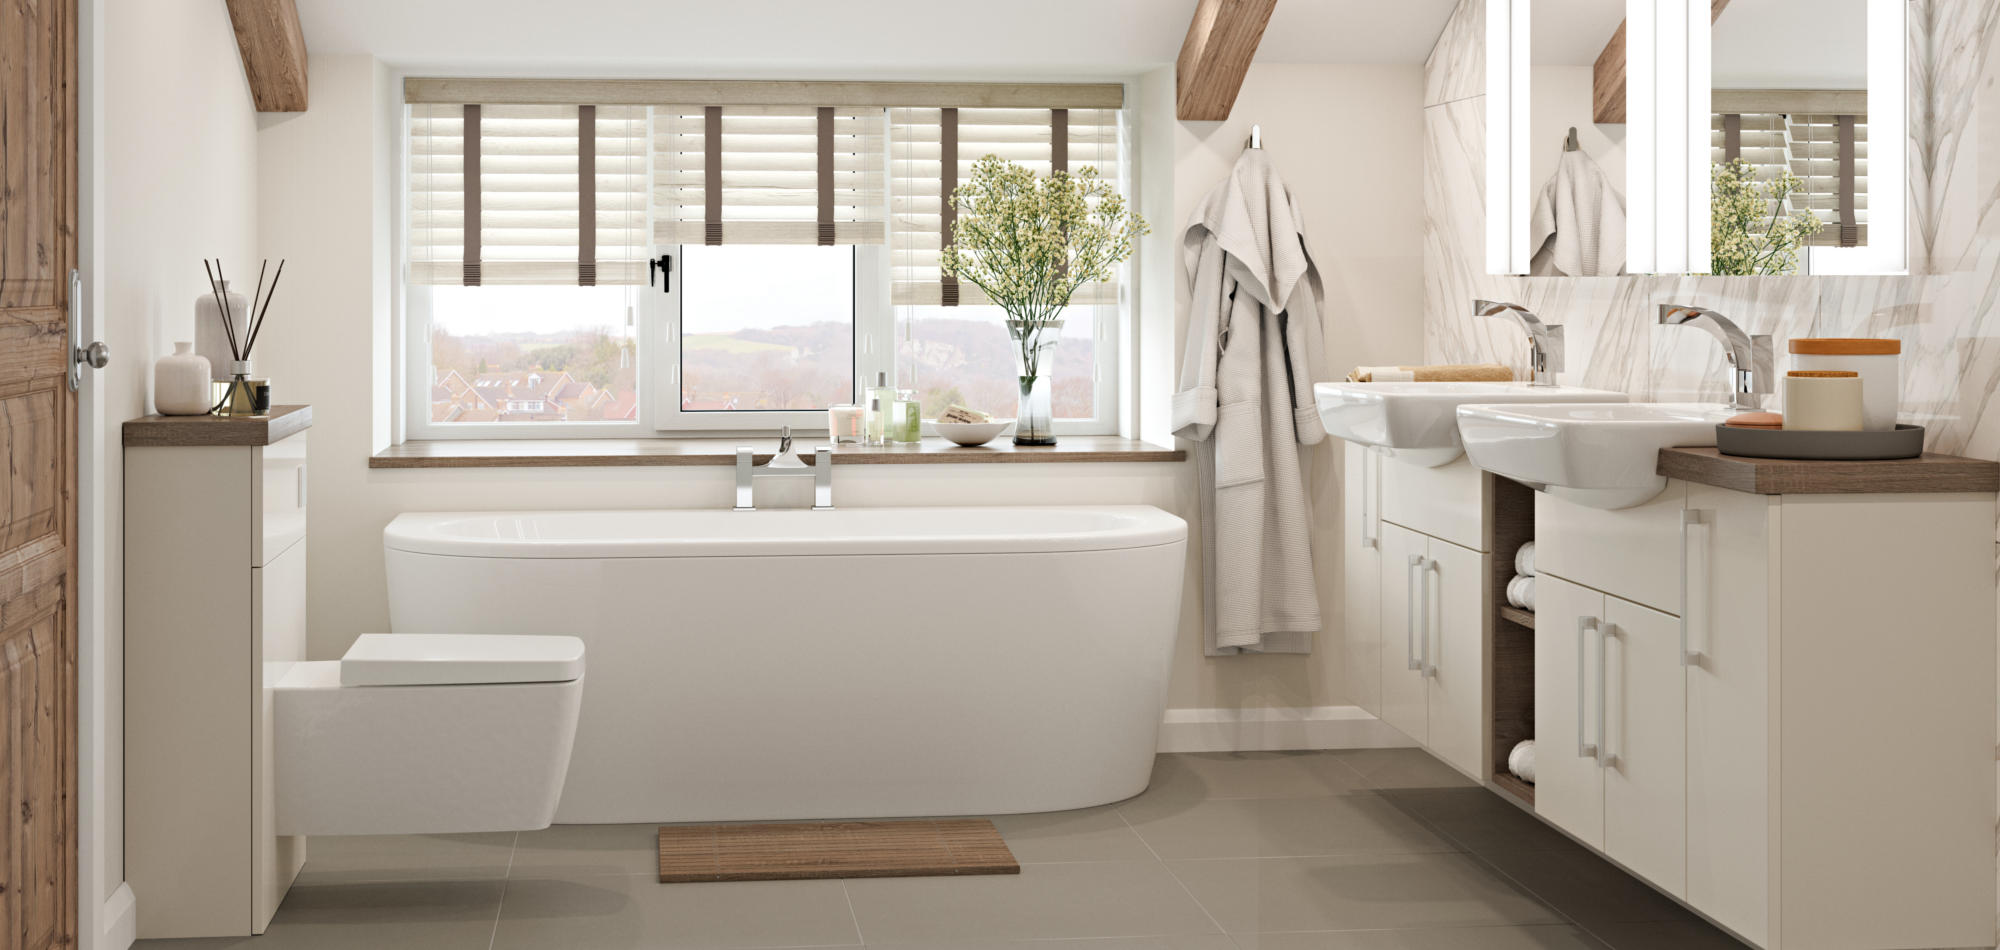 Merveilleux Bathrooms   Mereway Kitchens